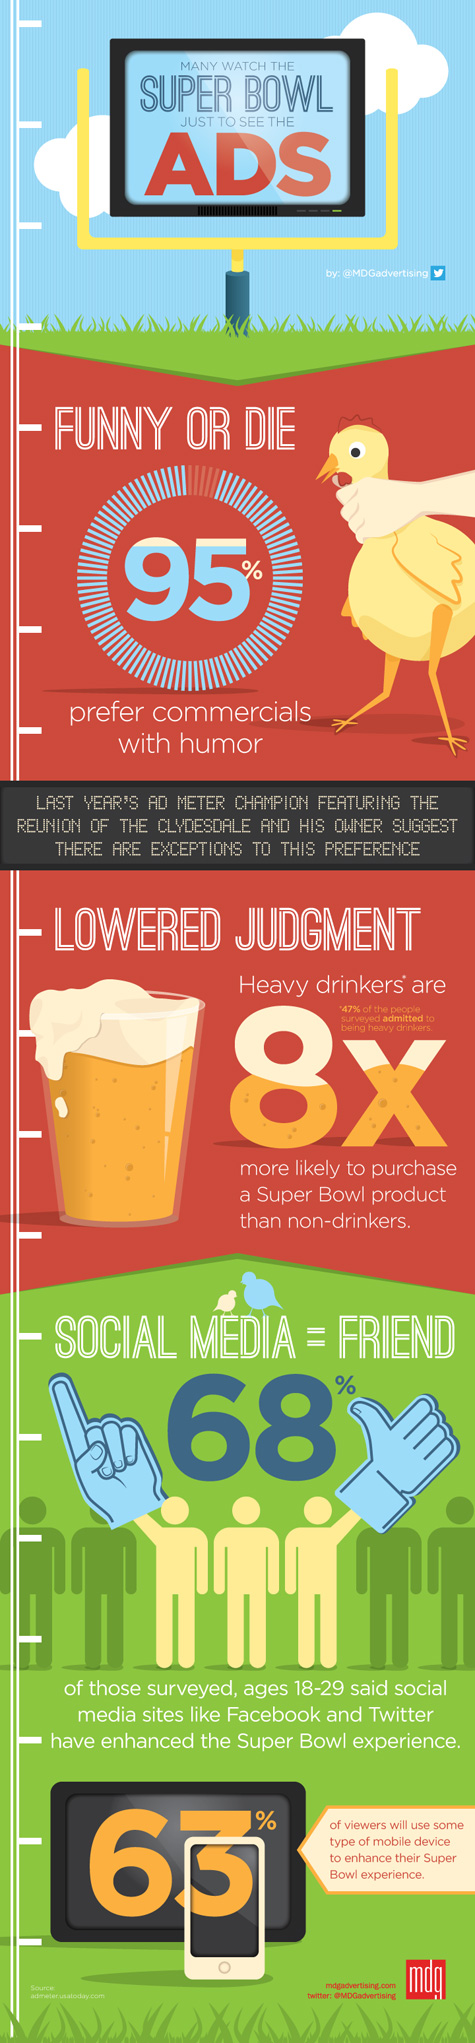 superbowl ads infographic 475